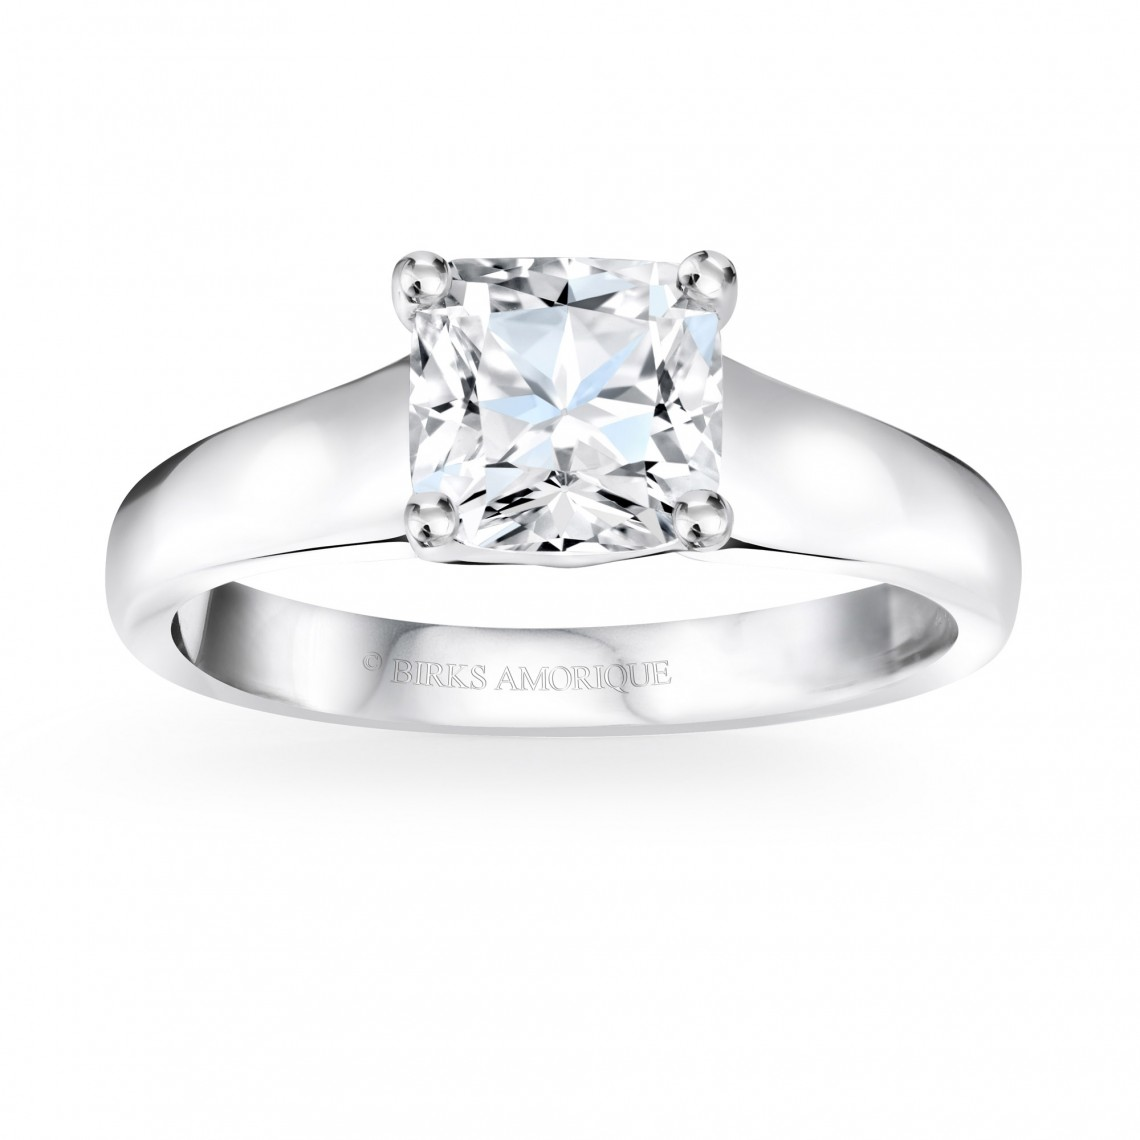 Birks Amorique® Solitaire Diamond Engagement Ring Image